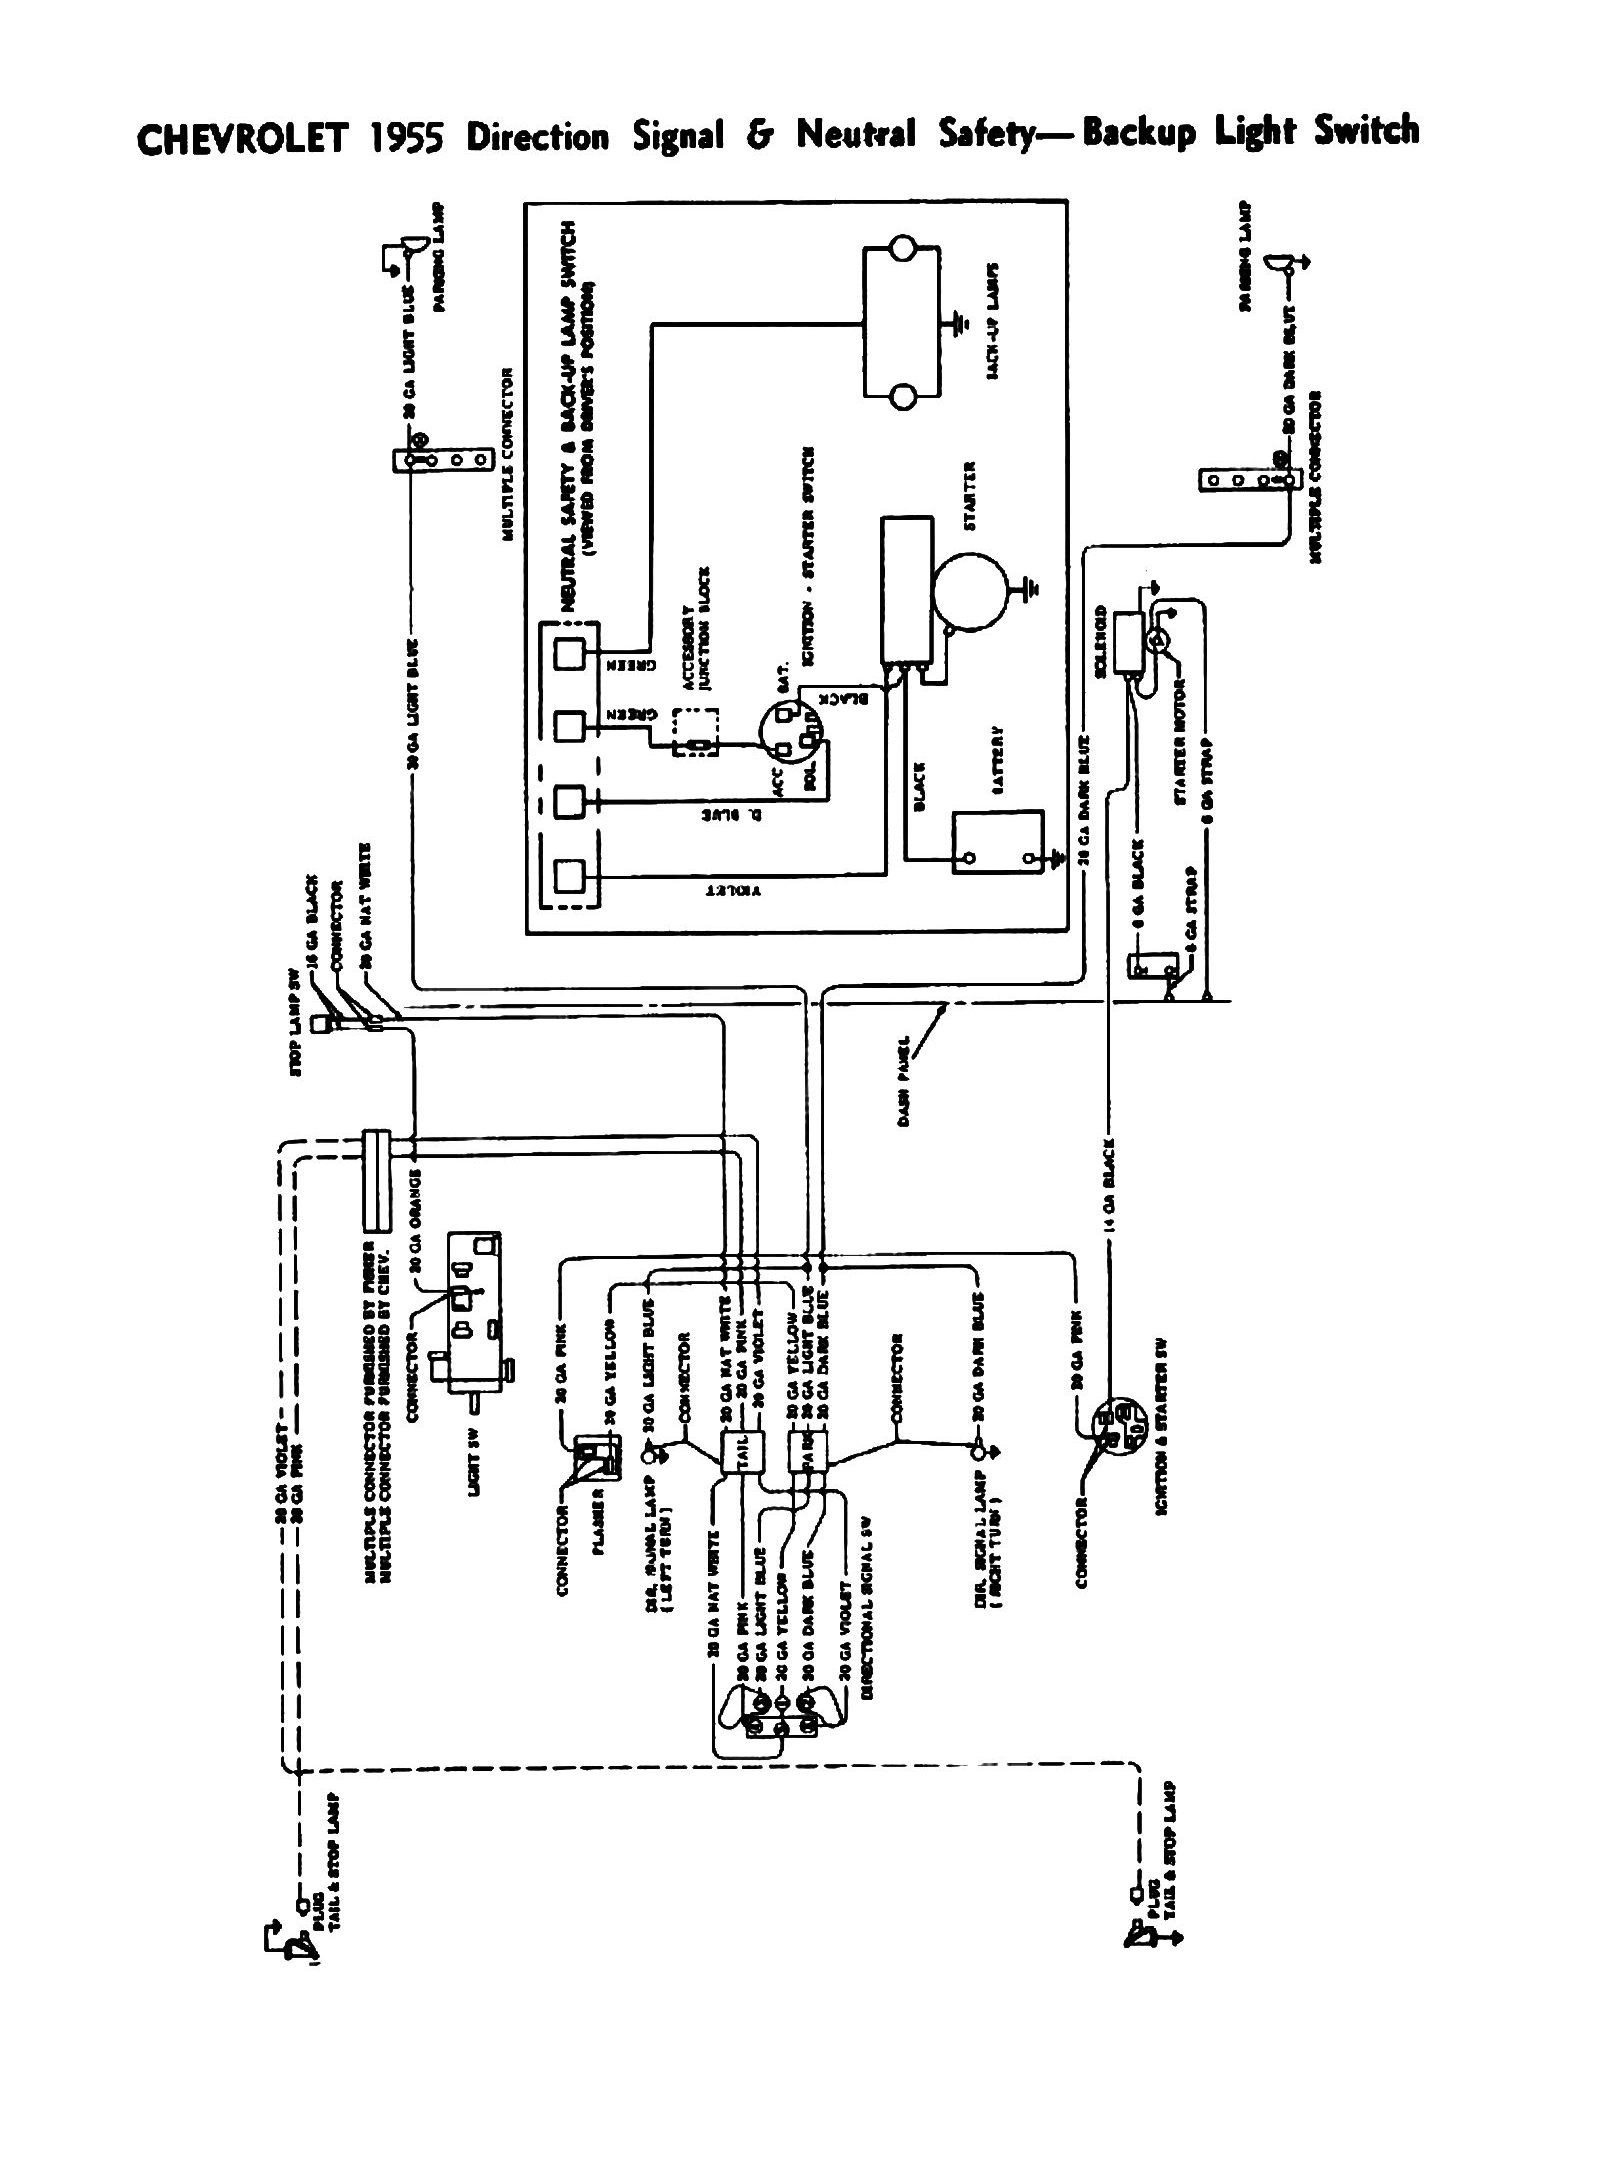 wiring diagram for a 1955 cadillac